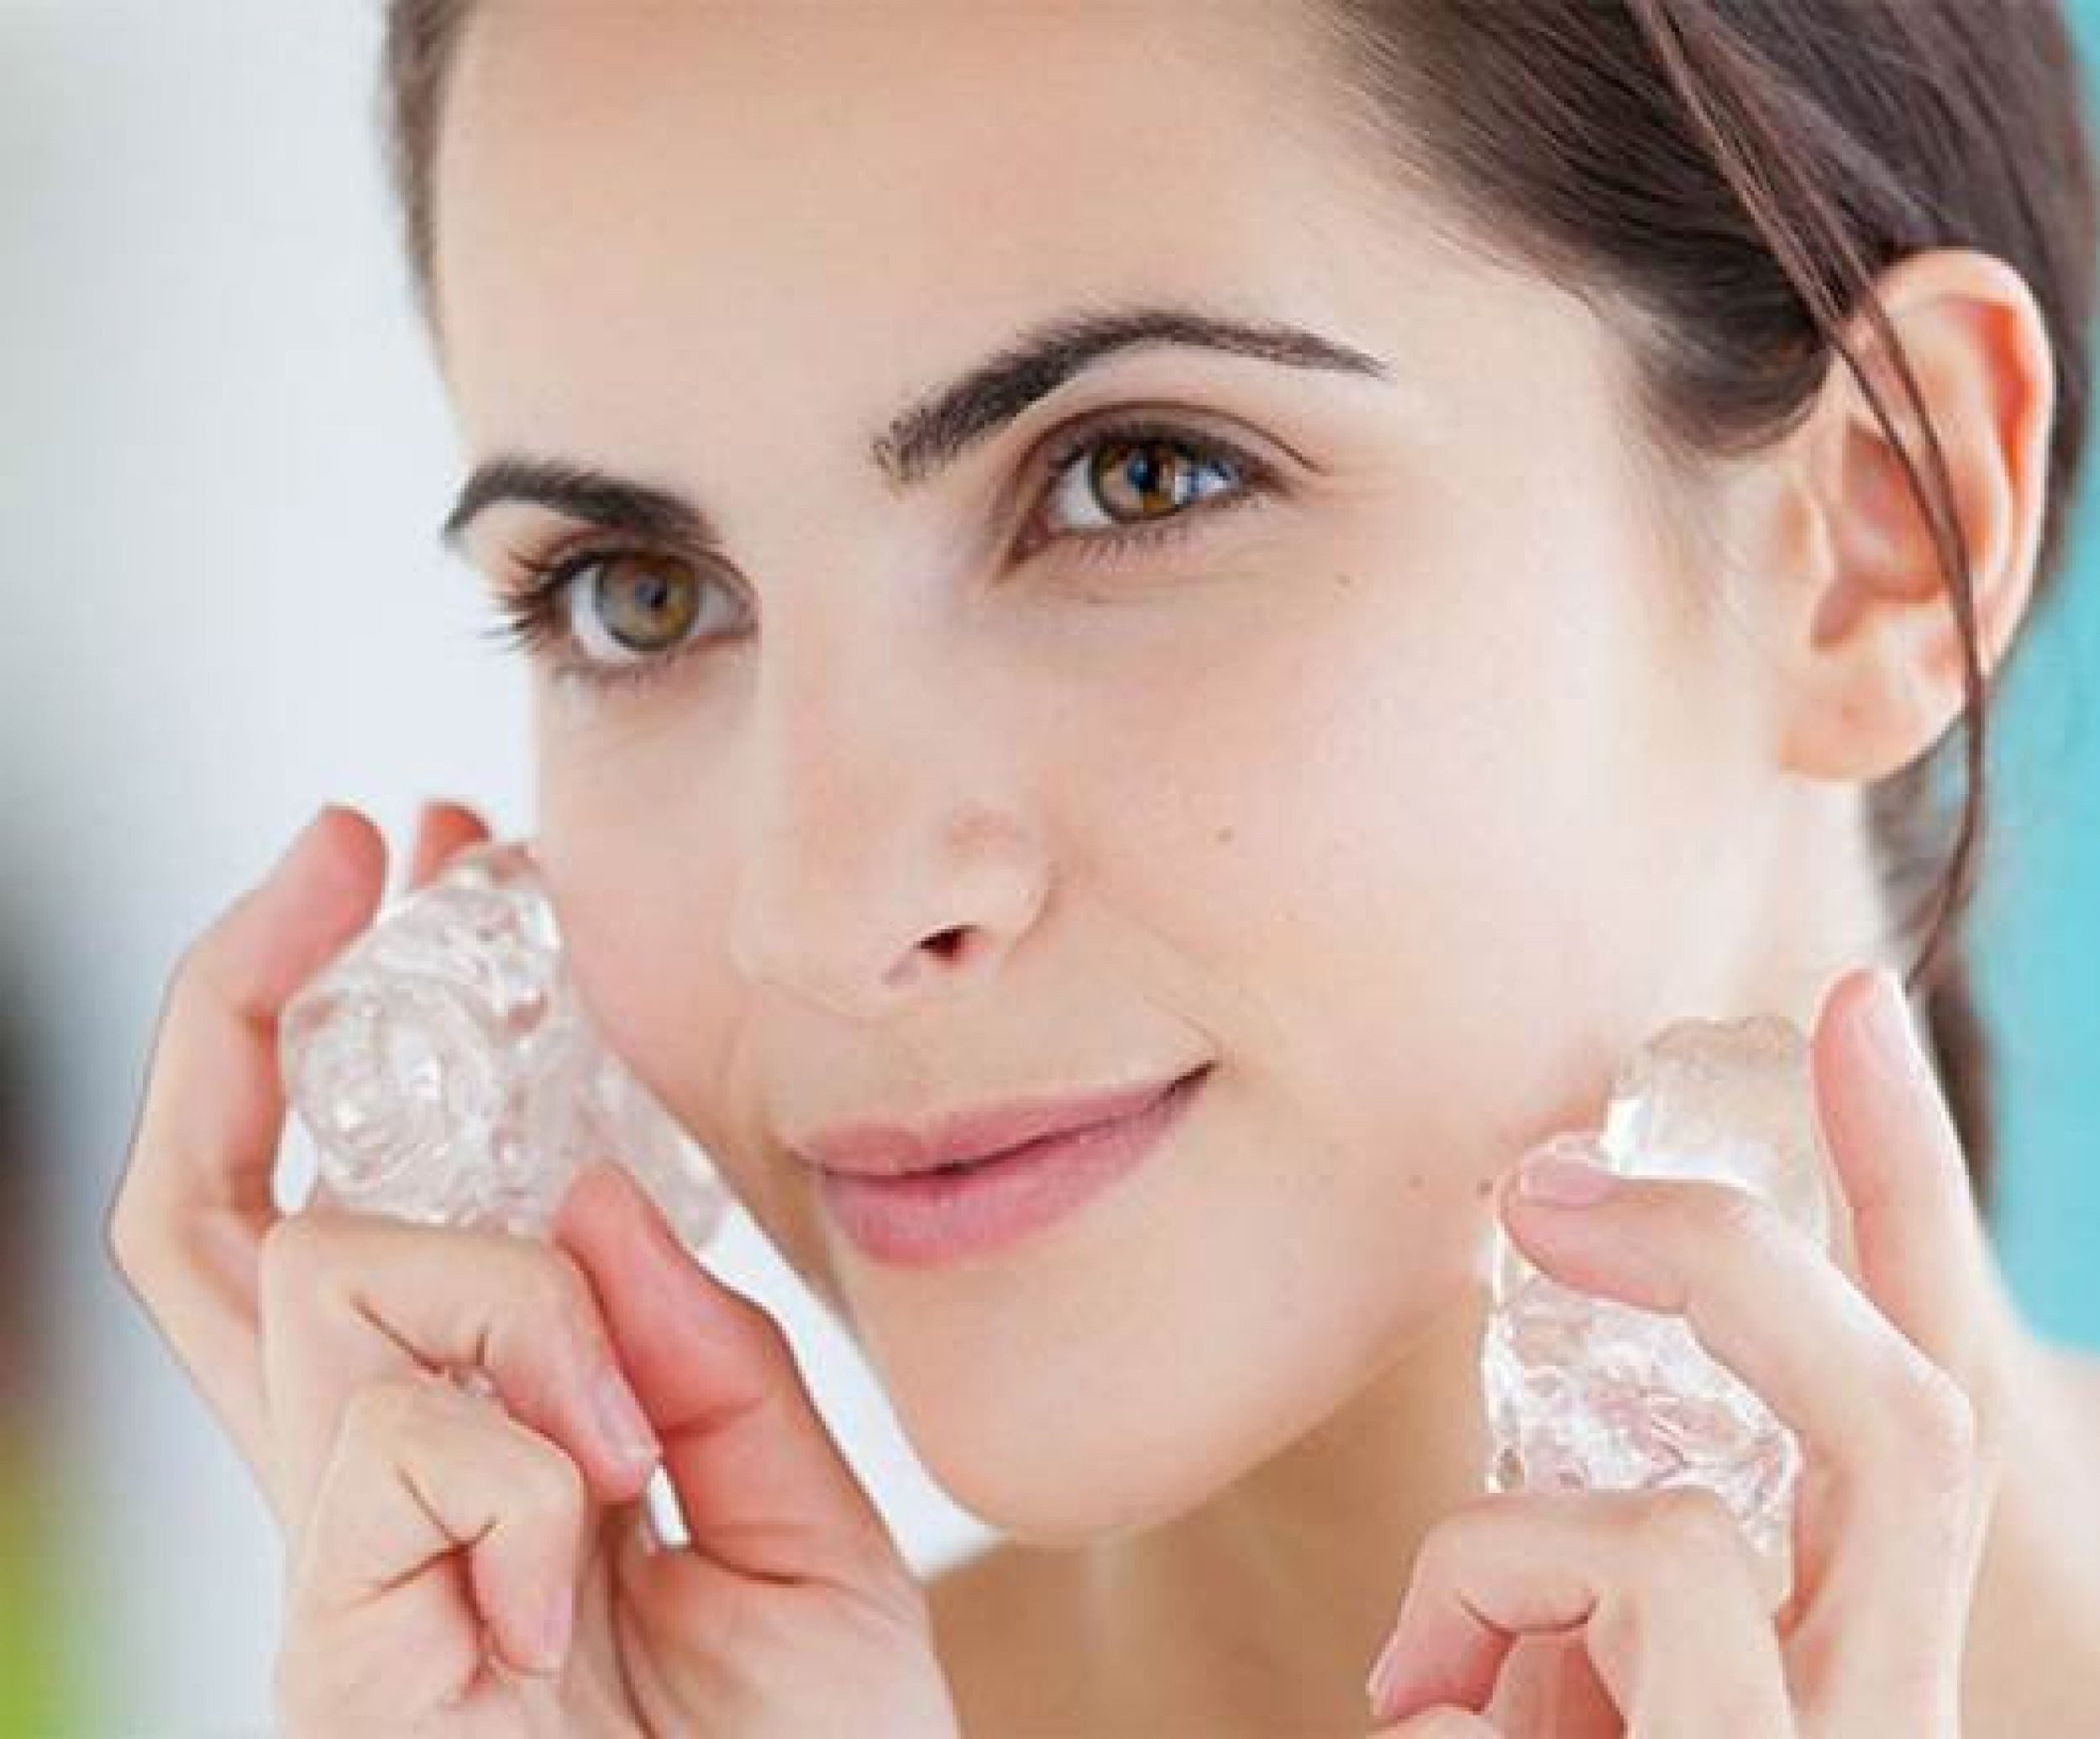 skin icing: woman smiling and holding ice cubes against her face.